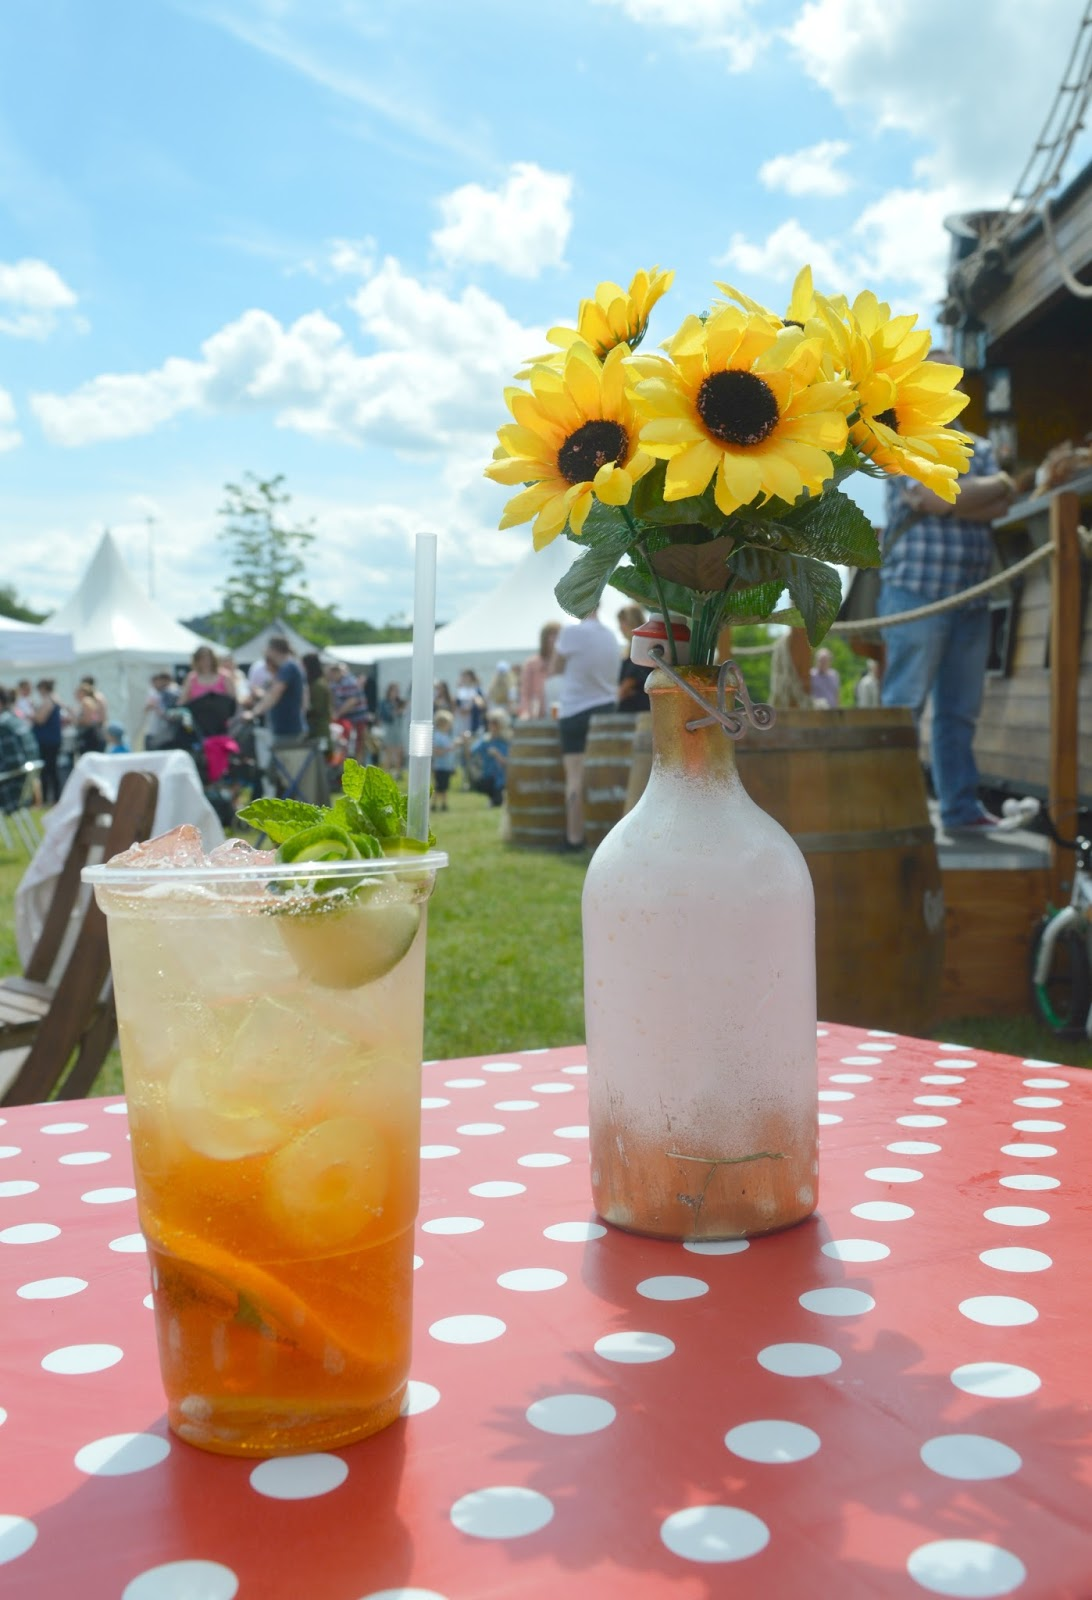 The Foodies Festival - Pimms